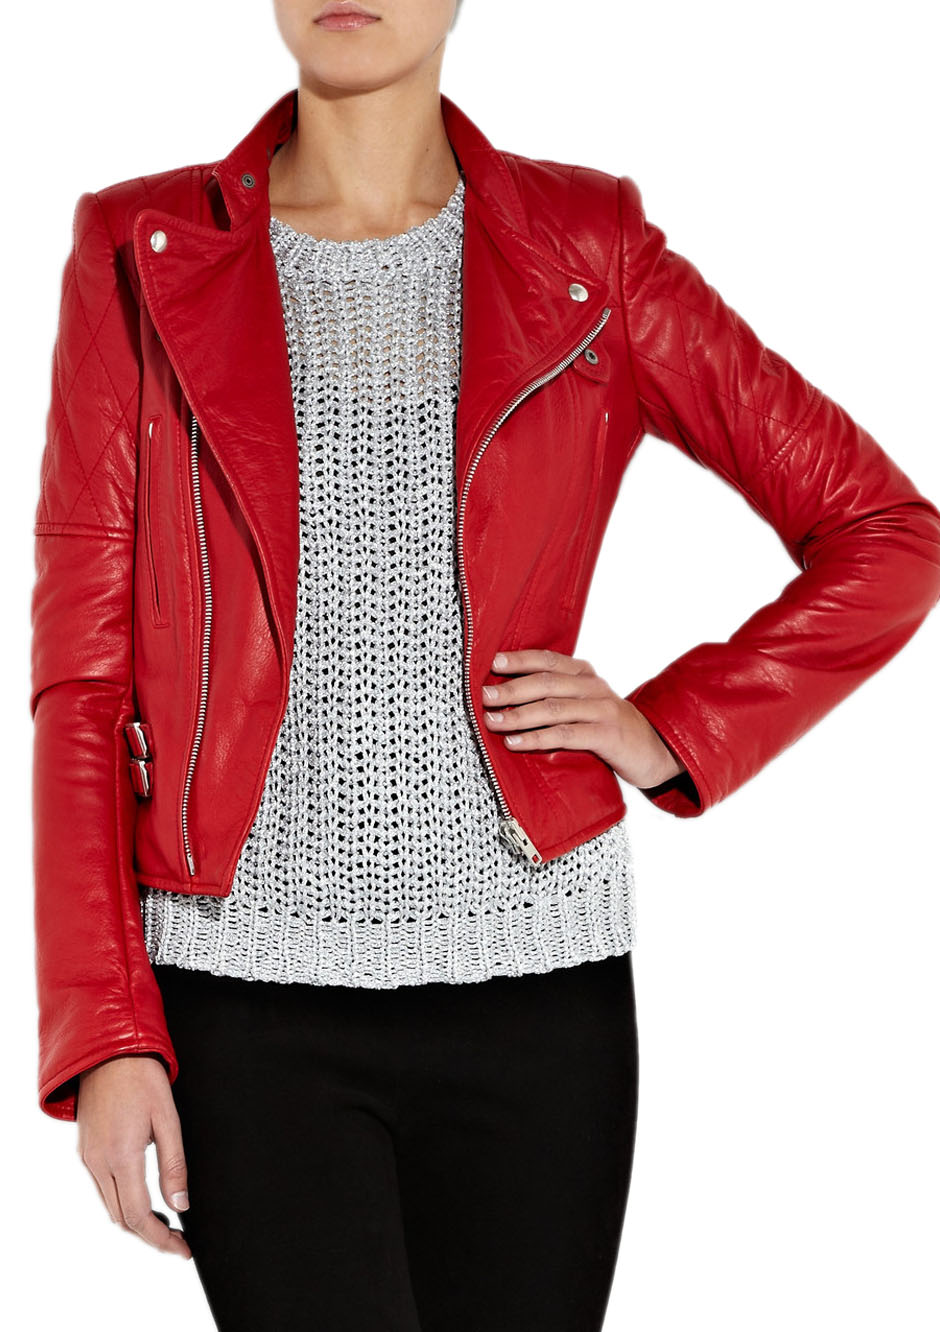 Red leather jacket woman